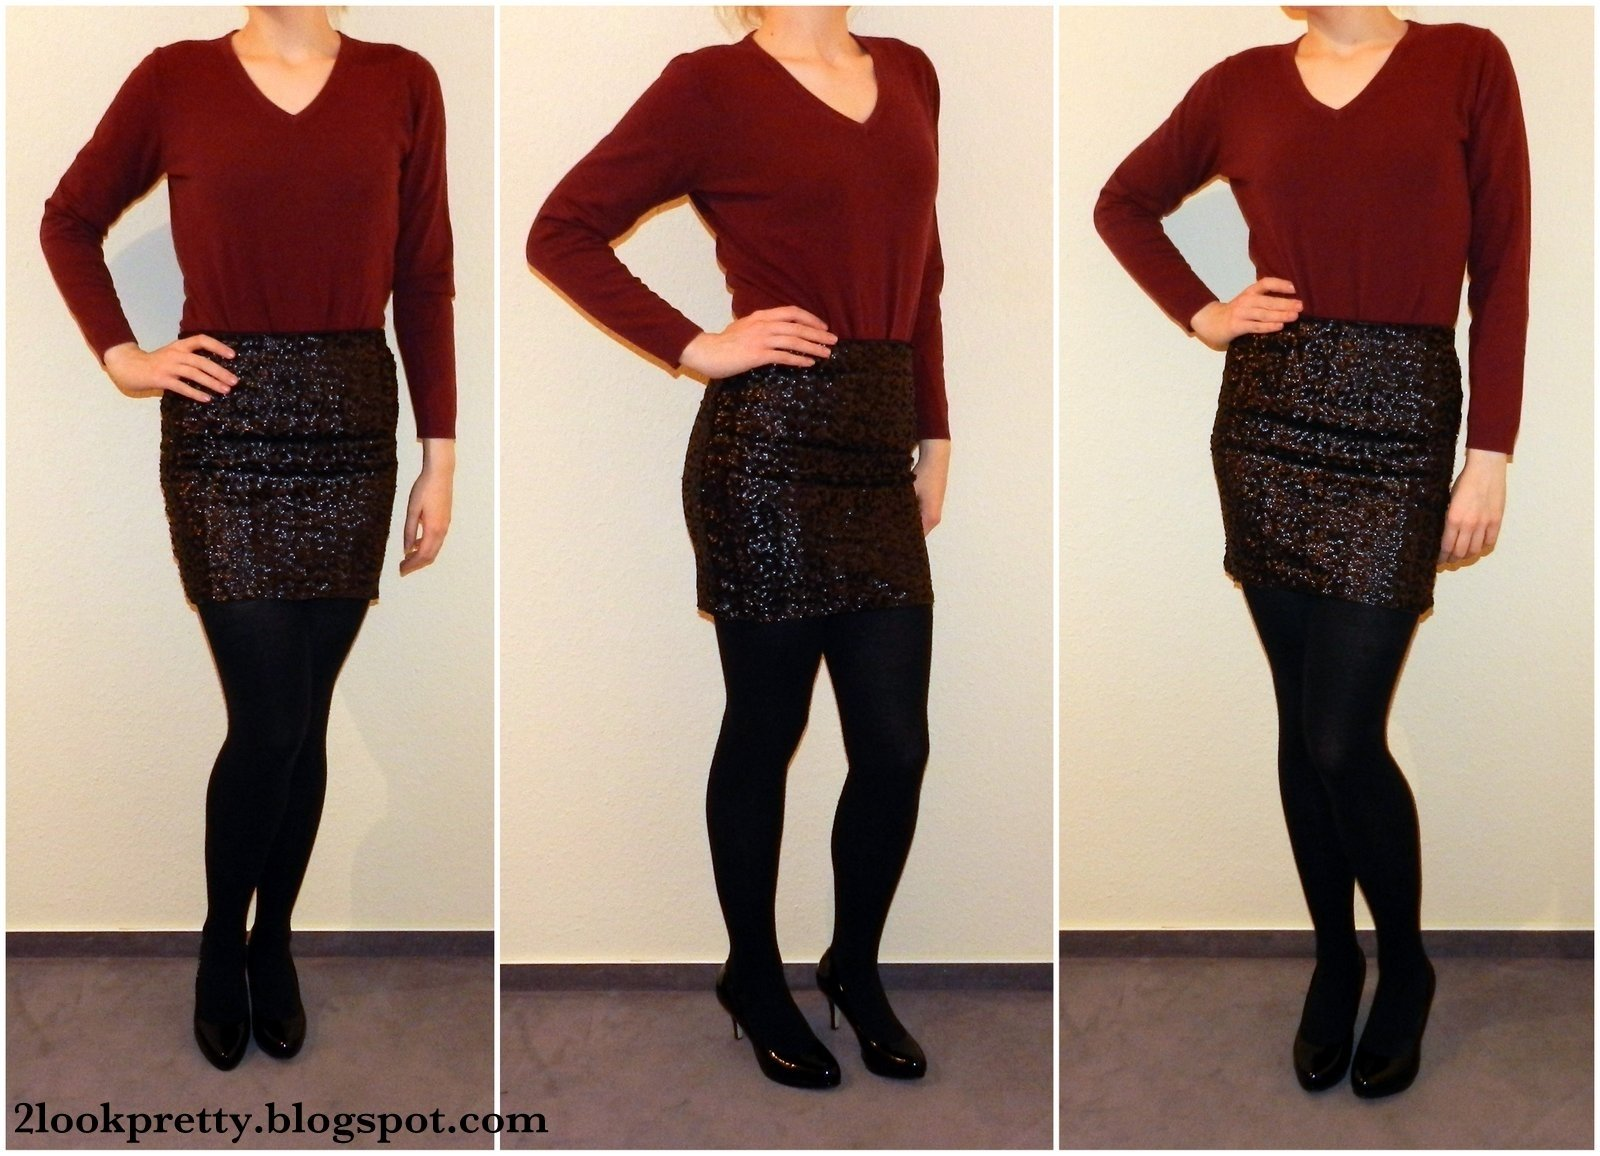 10 Famous Christmas Outfits For Women Ideas 2 look pretty 3 christmas outfit ideas for 3 different occasions 2021